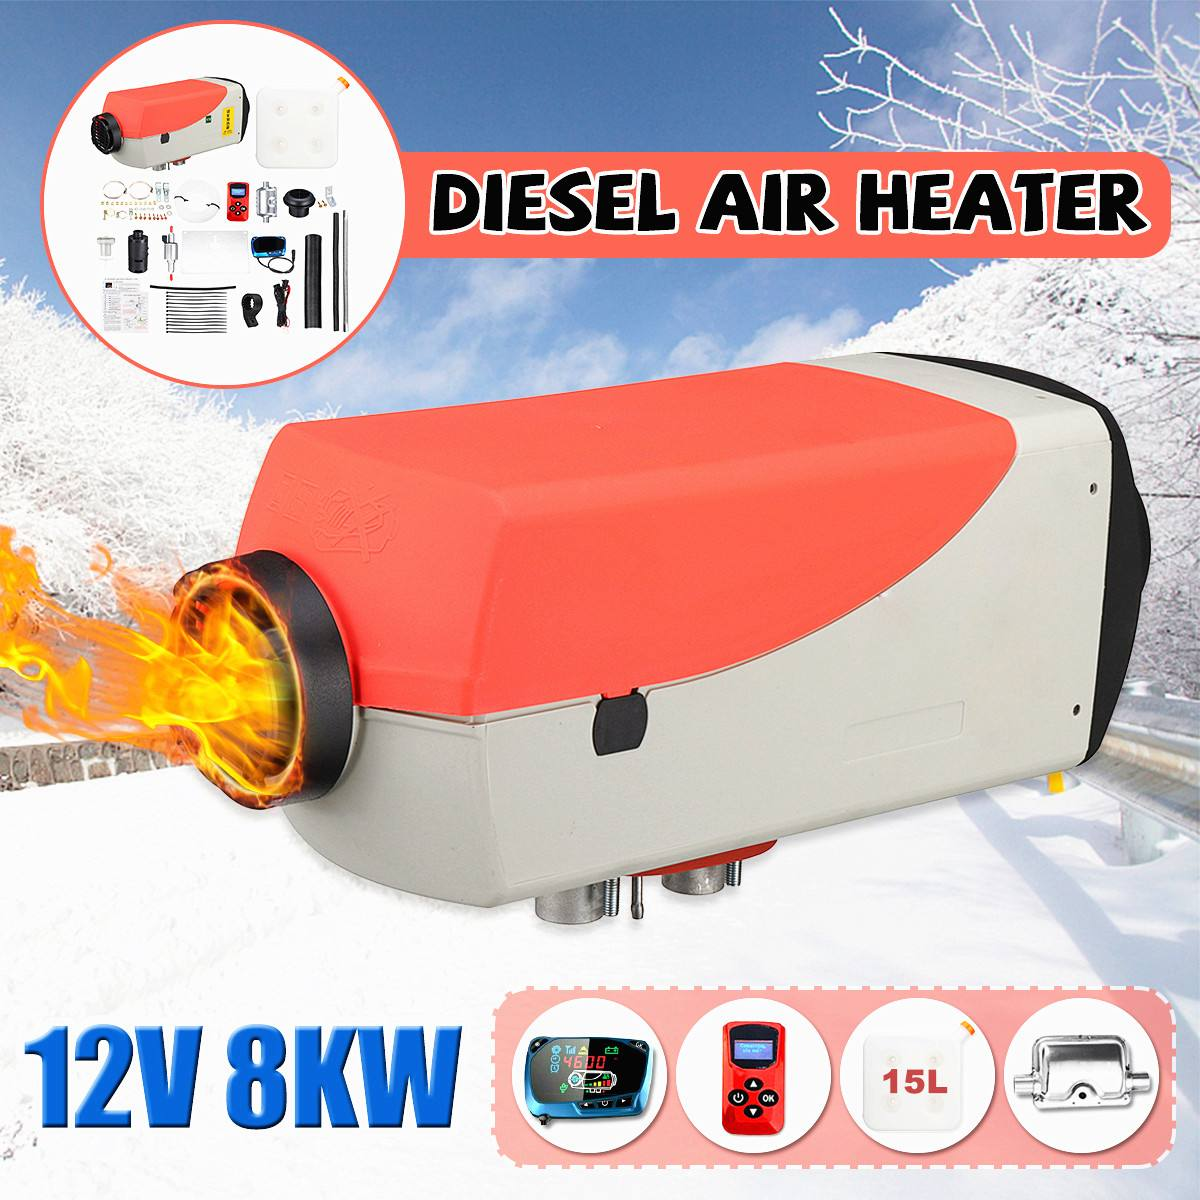 8000W 12V Diesel Air Heater Kit with Muffler <font><b>15L</b></font> <font><b>Tank</b></font> Car Parking Diesel Heater LCD Dynamic Thermostat Remote Control image